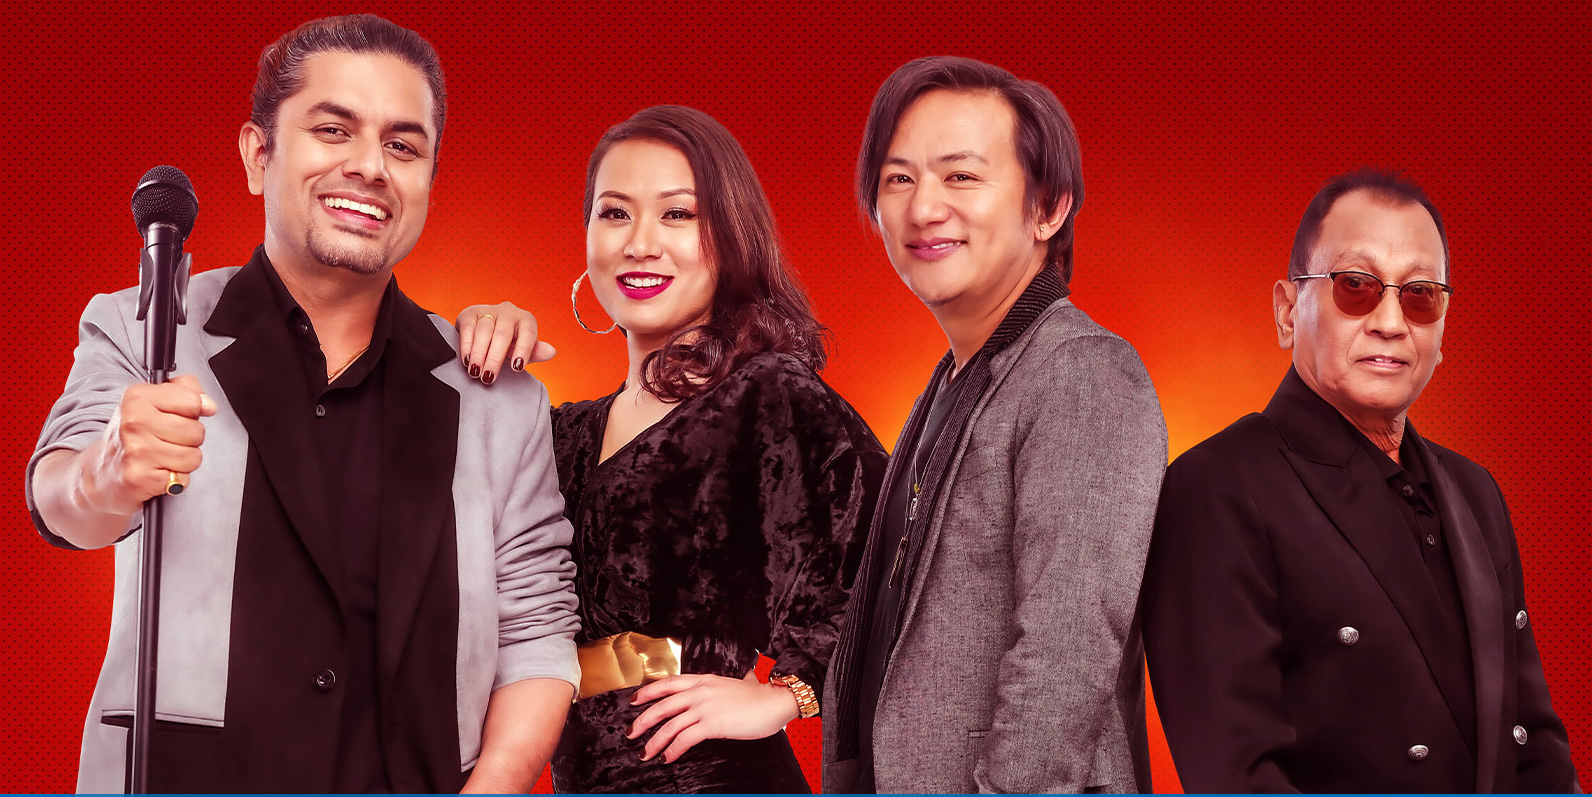 Blind Audition Performance | The Voice of Nepal Season 3